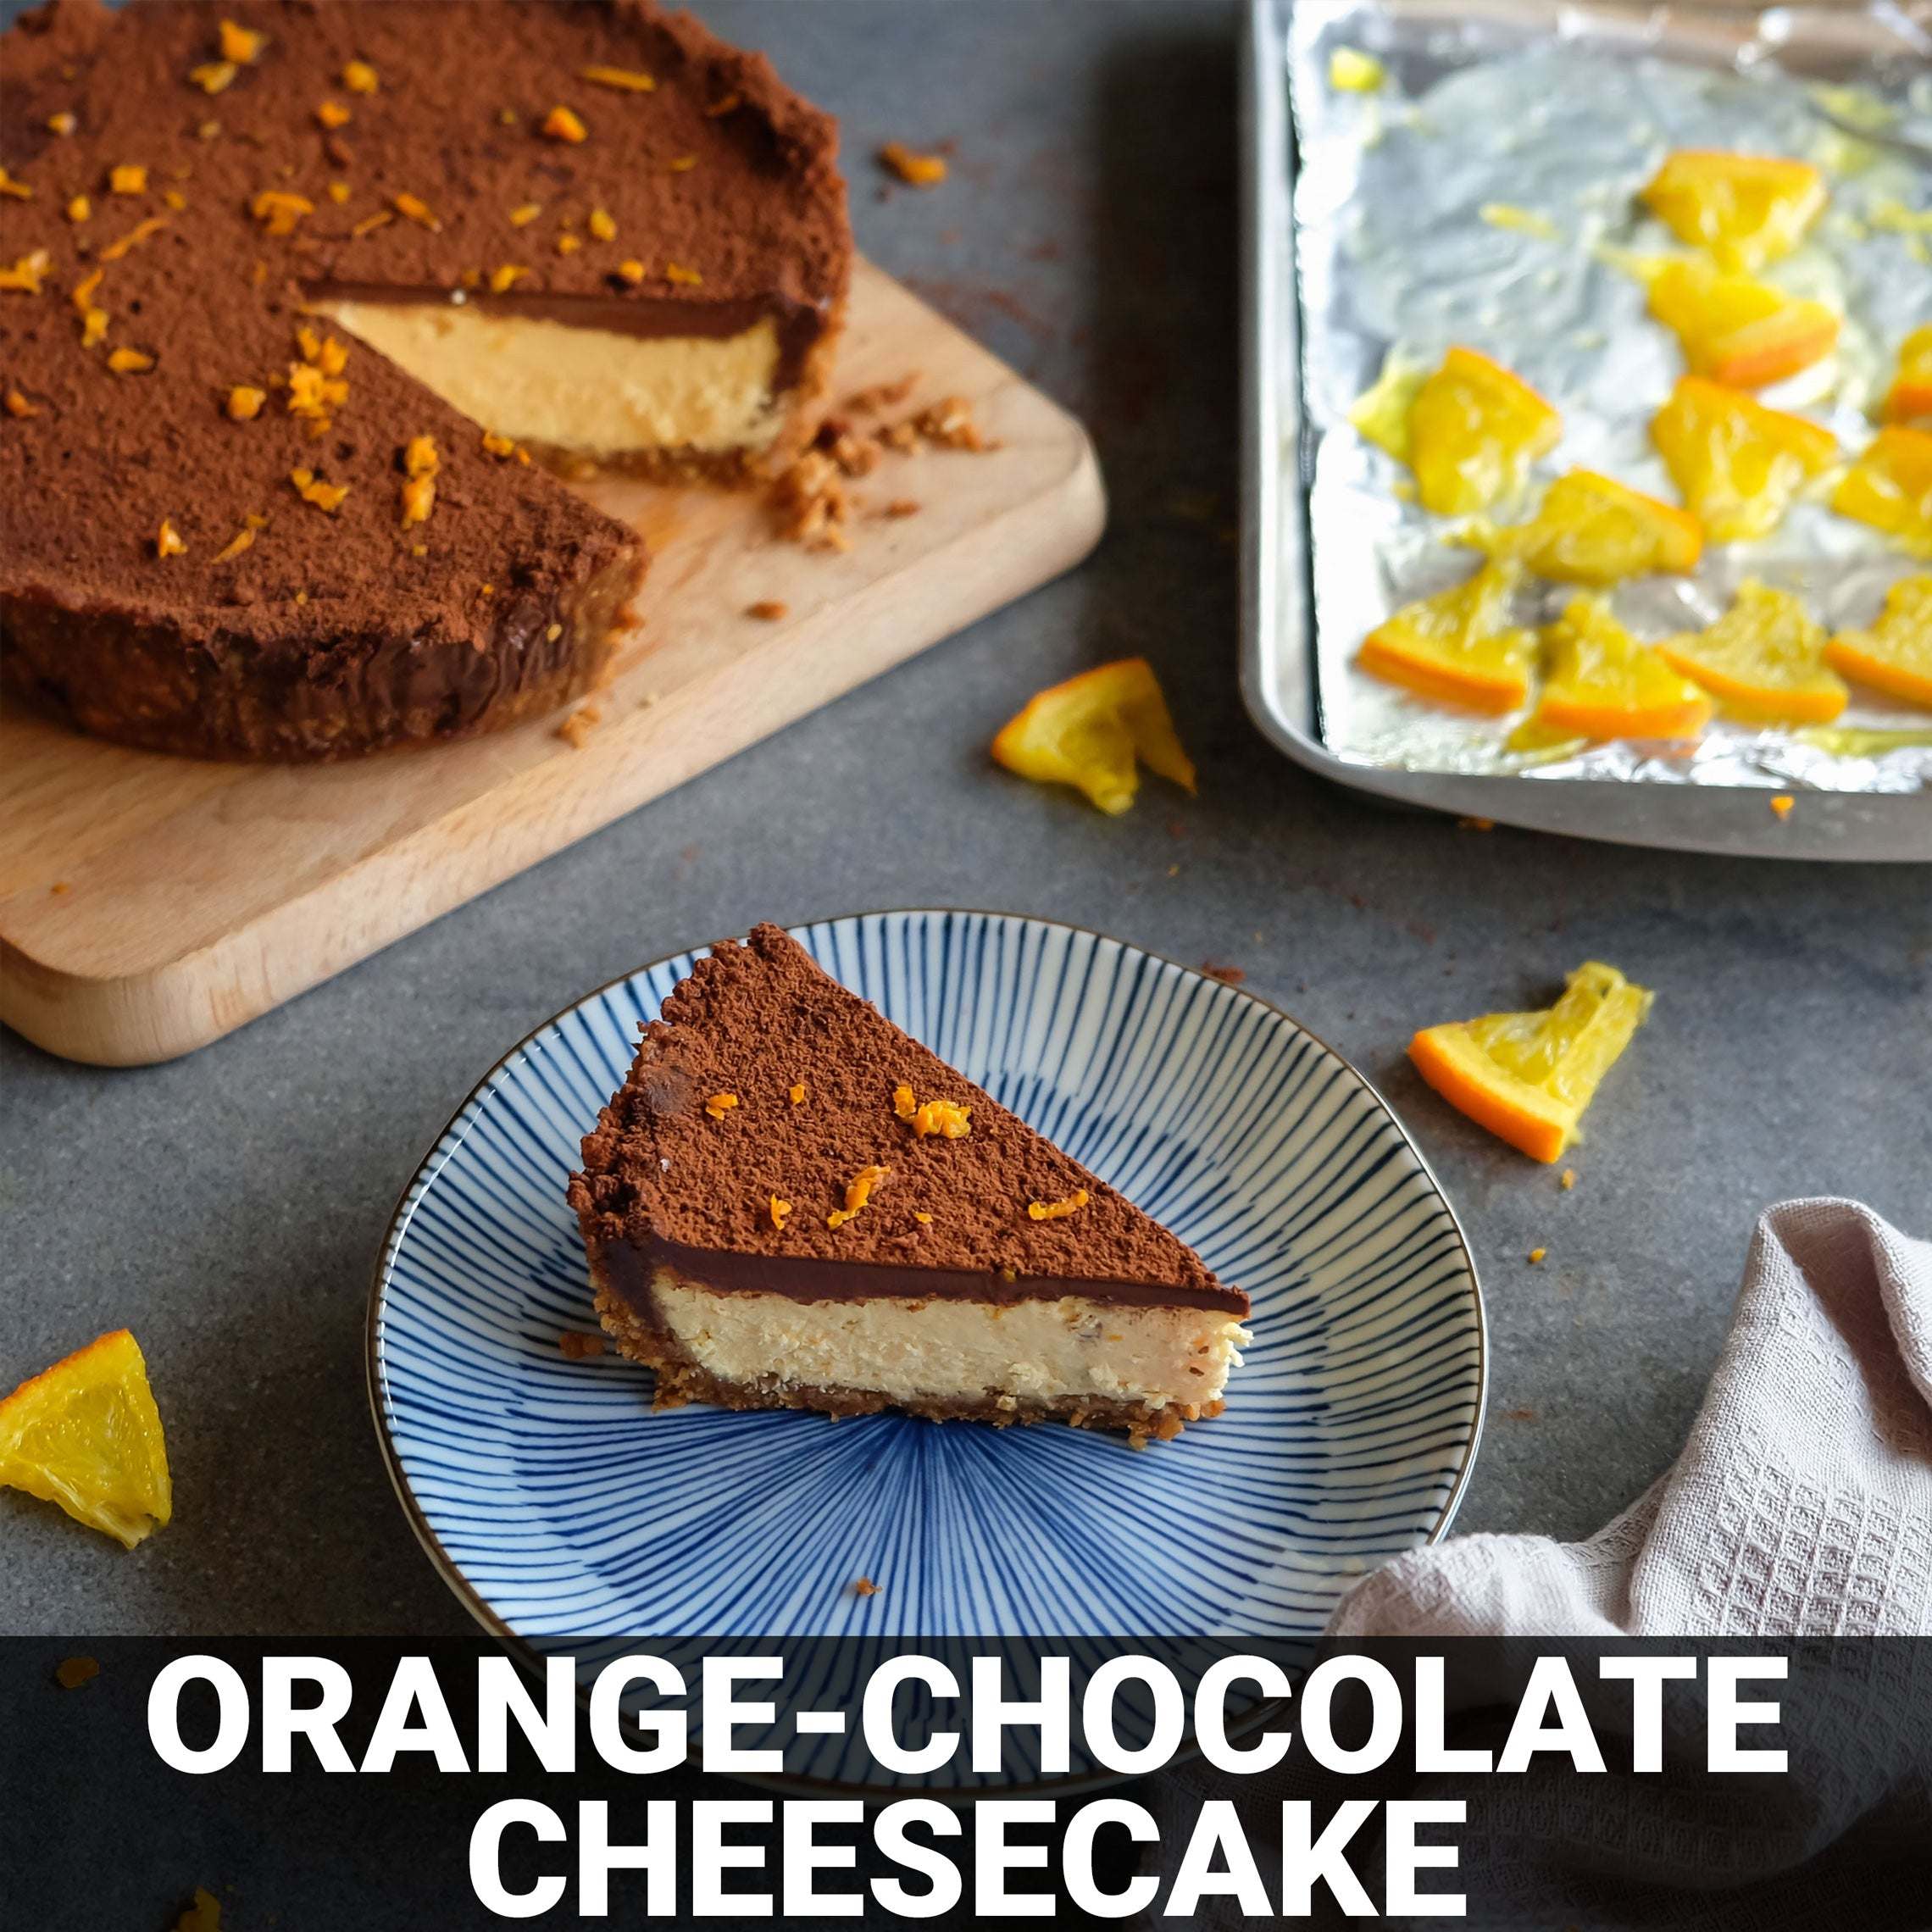 Orange-Chocolate Cheesecake Recipe - Foods Alive